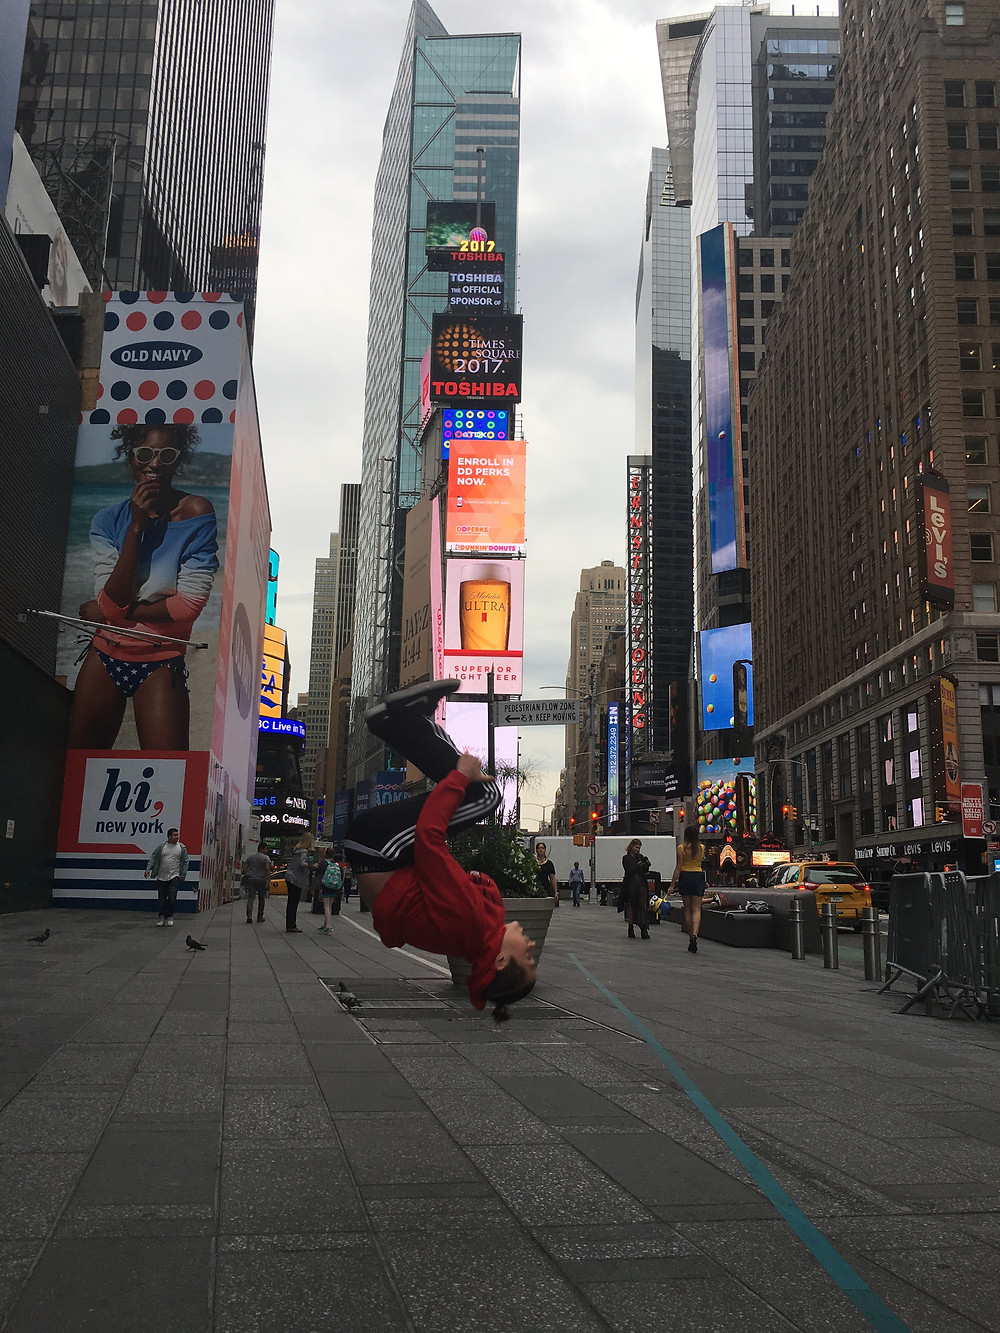 After 5 am, when this photo was taken,  TImes Square is a zoo!